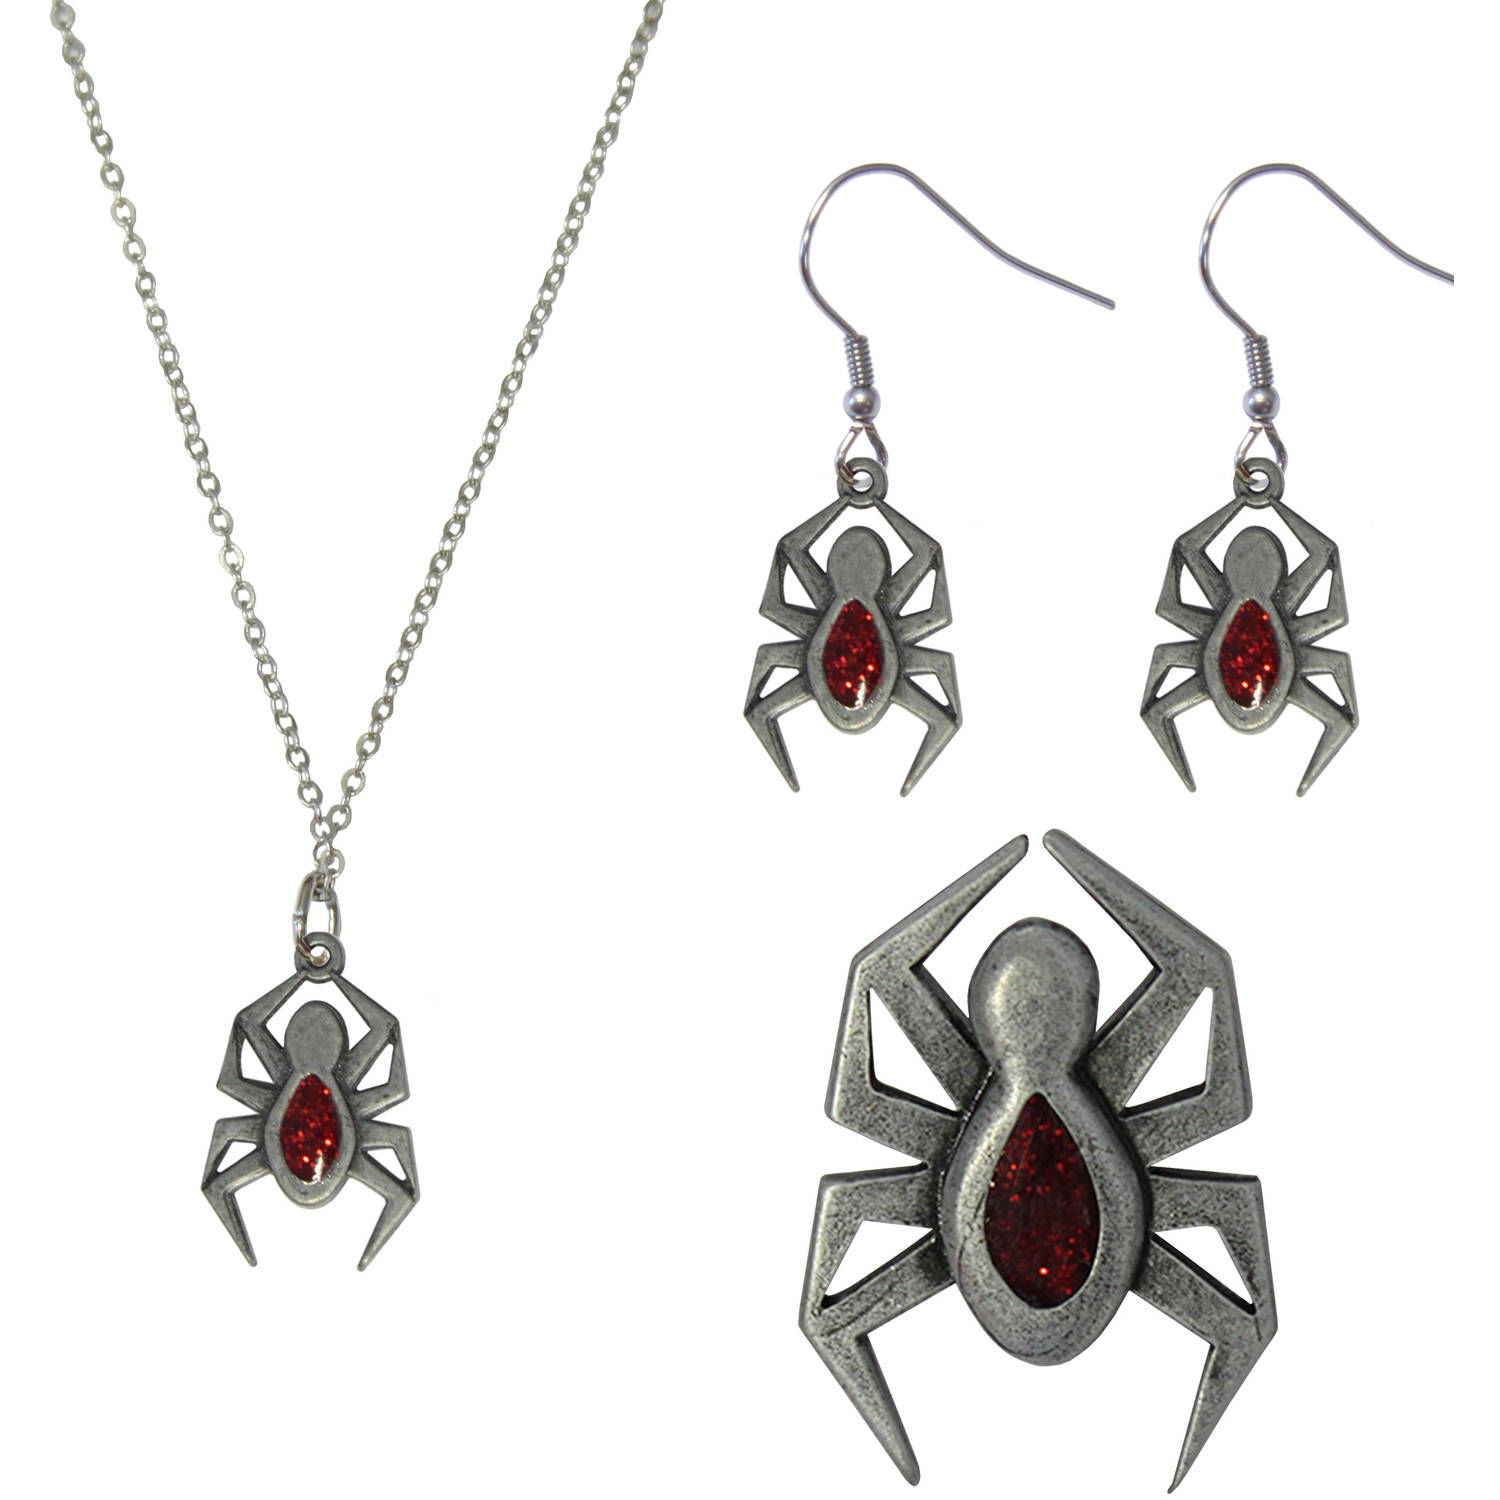 Gloria Duchin Spider Necklace, Earrings and Pin Jewelry Set